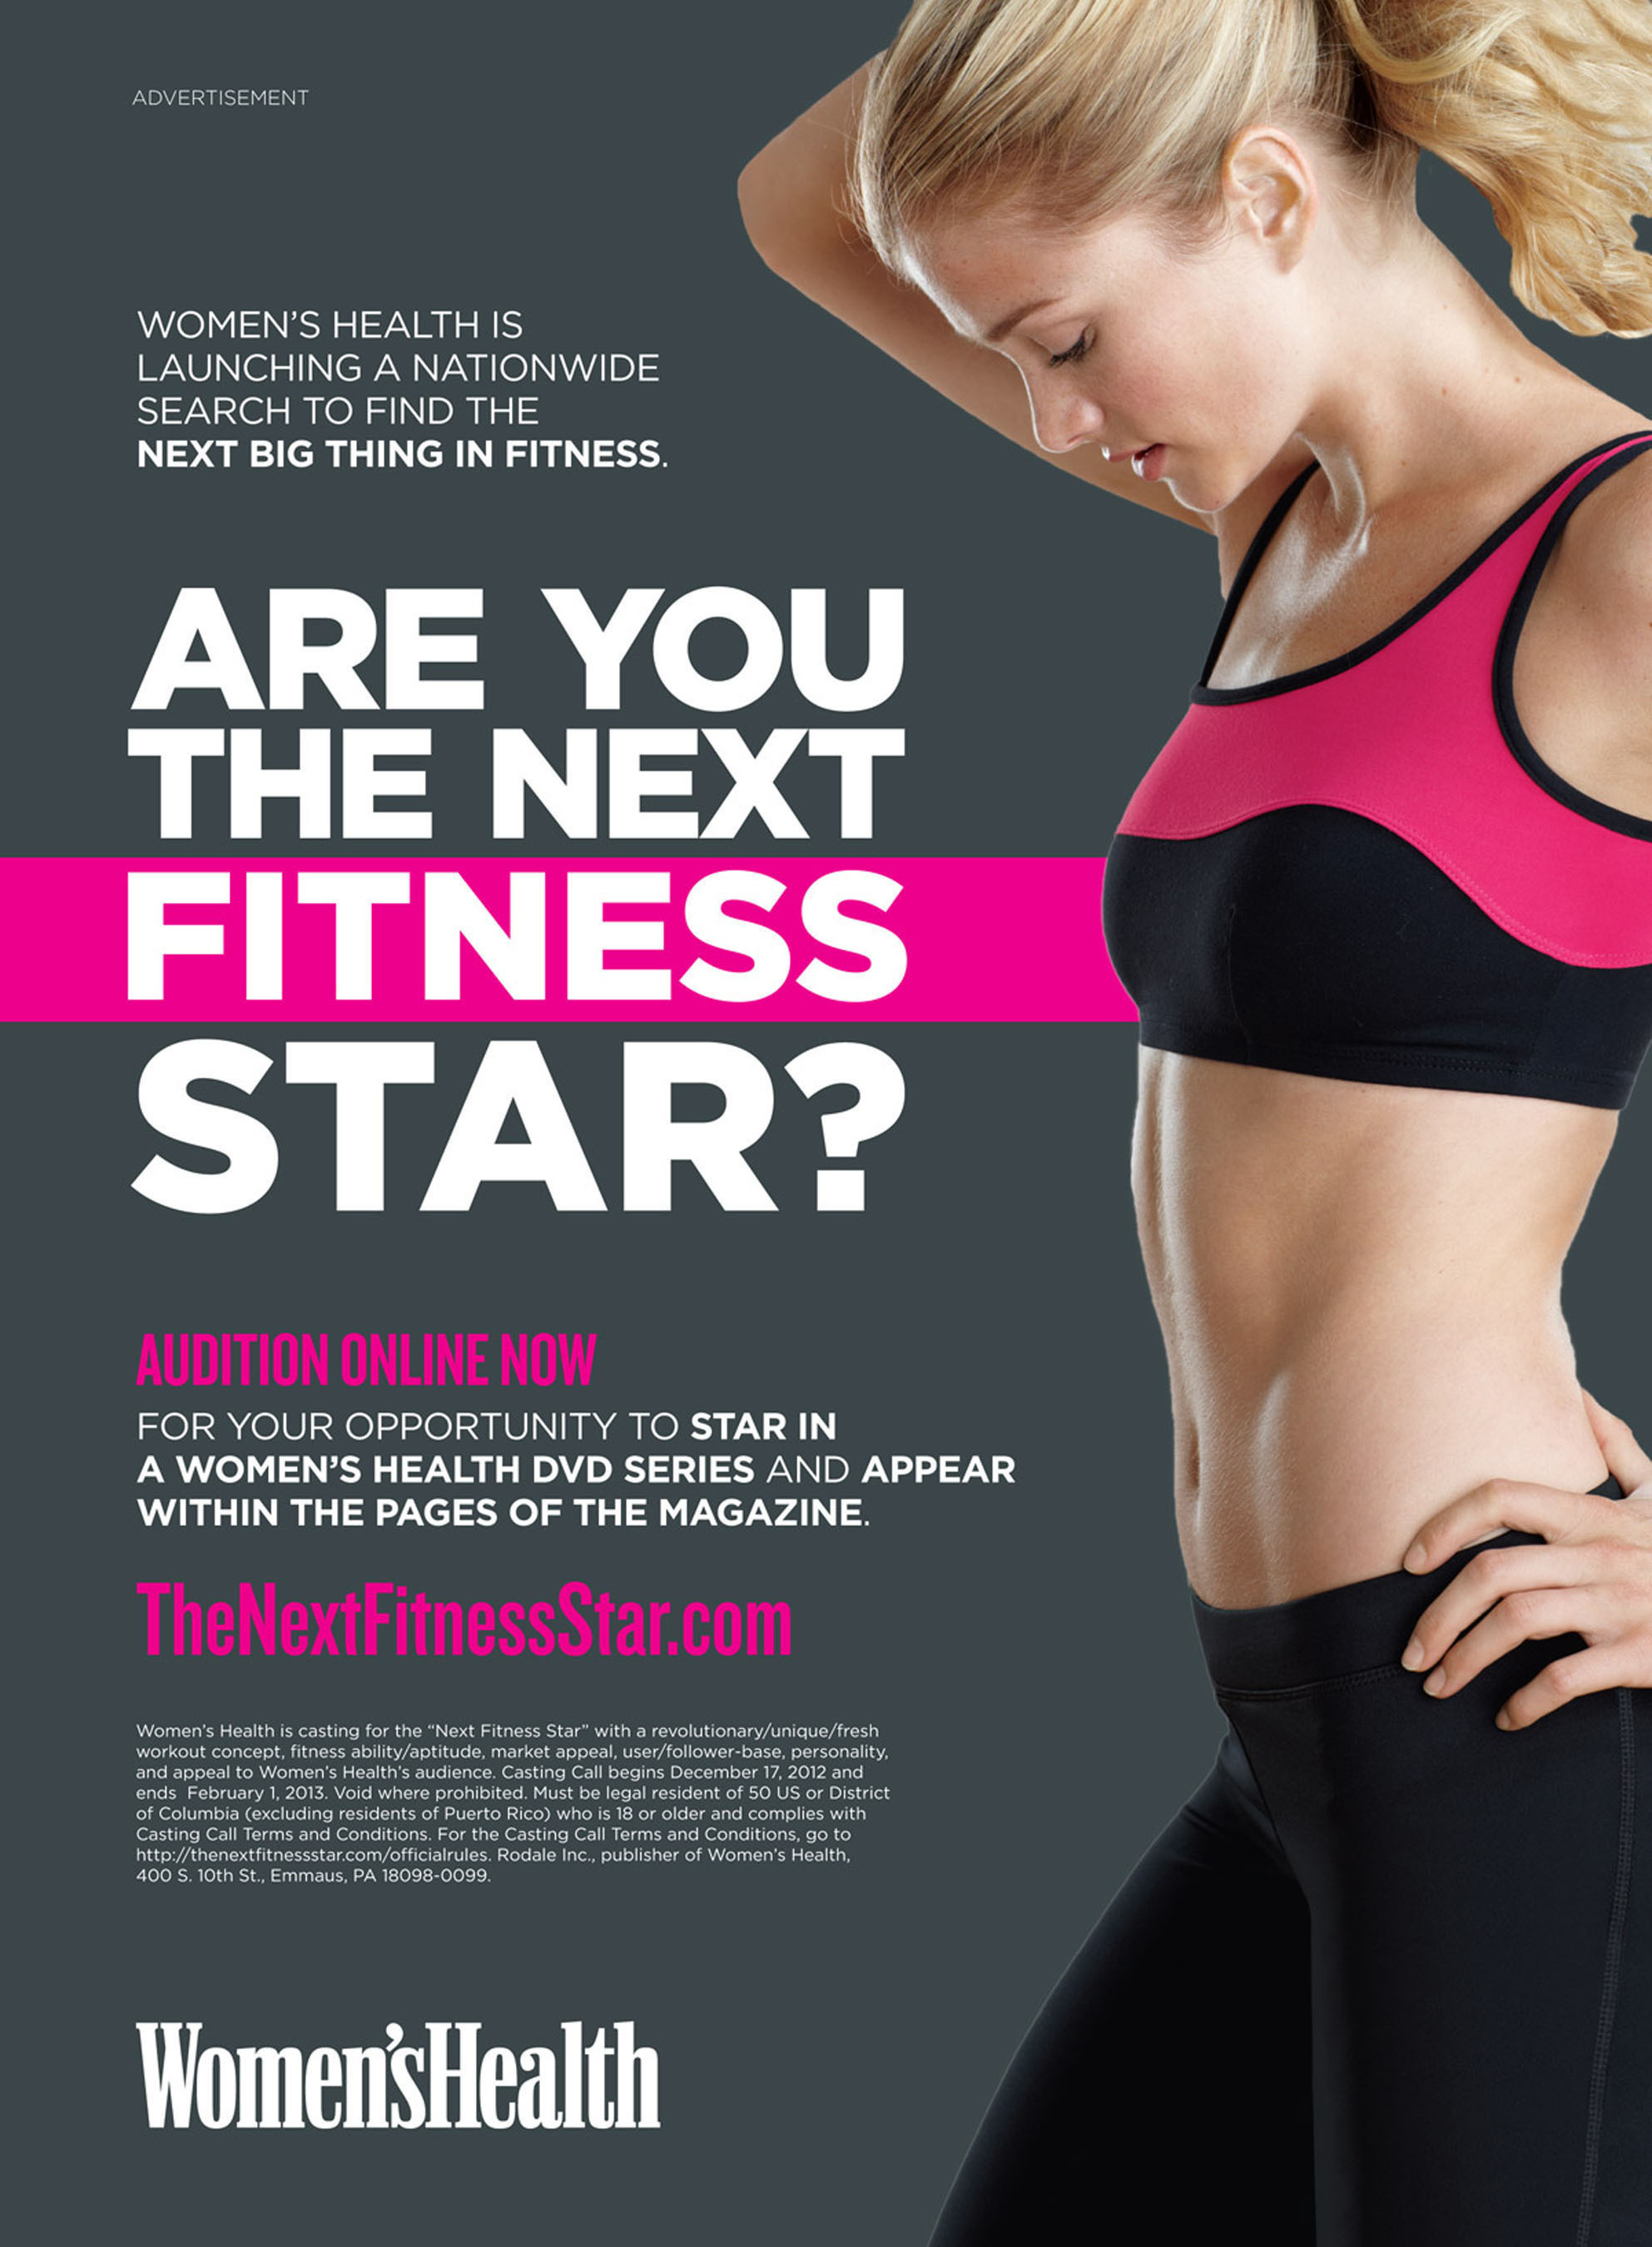 Women's Health Magazine Announces Nationwide Search For The Next Fitness Star